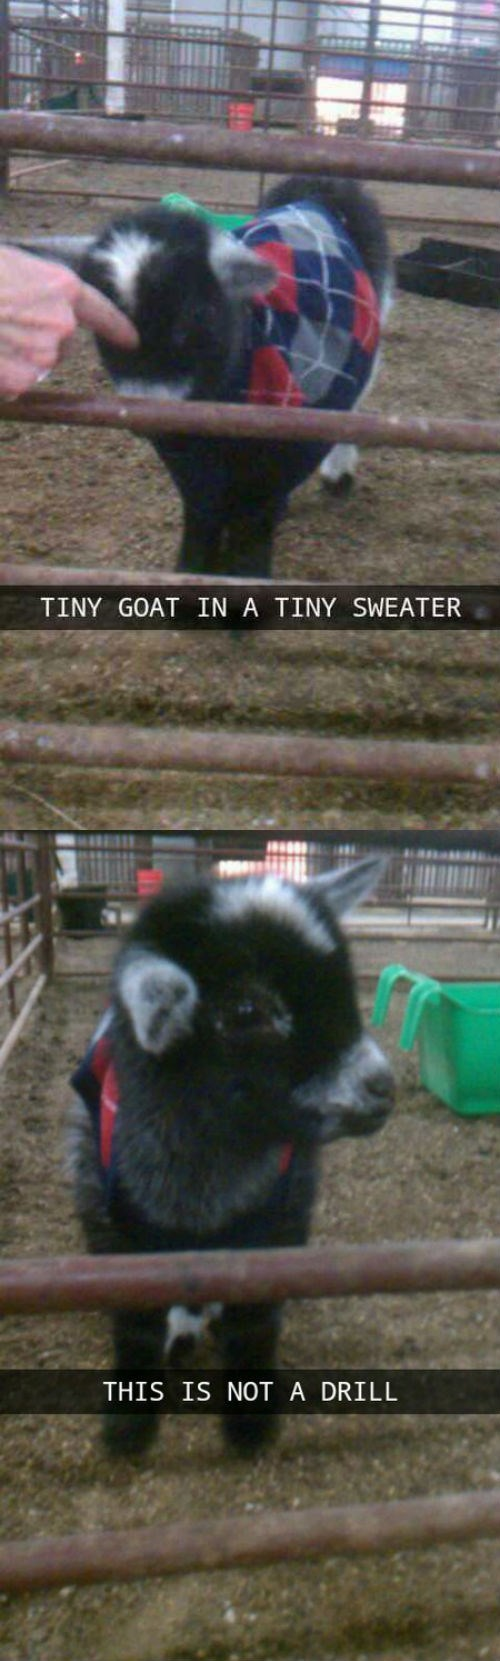 goat baby goat sweater animals g rated poorly dressed - 7939522304